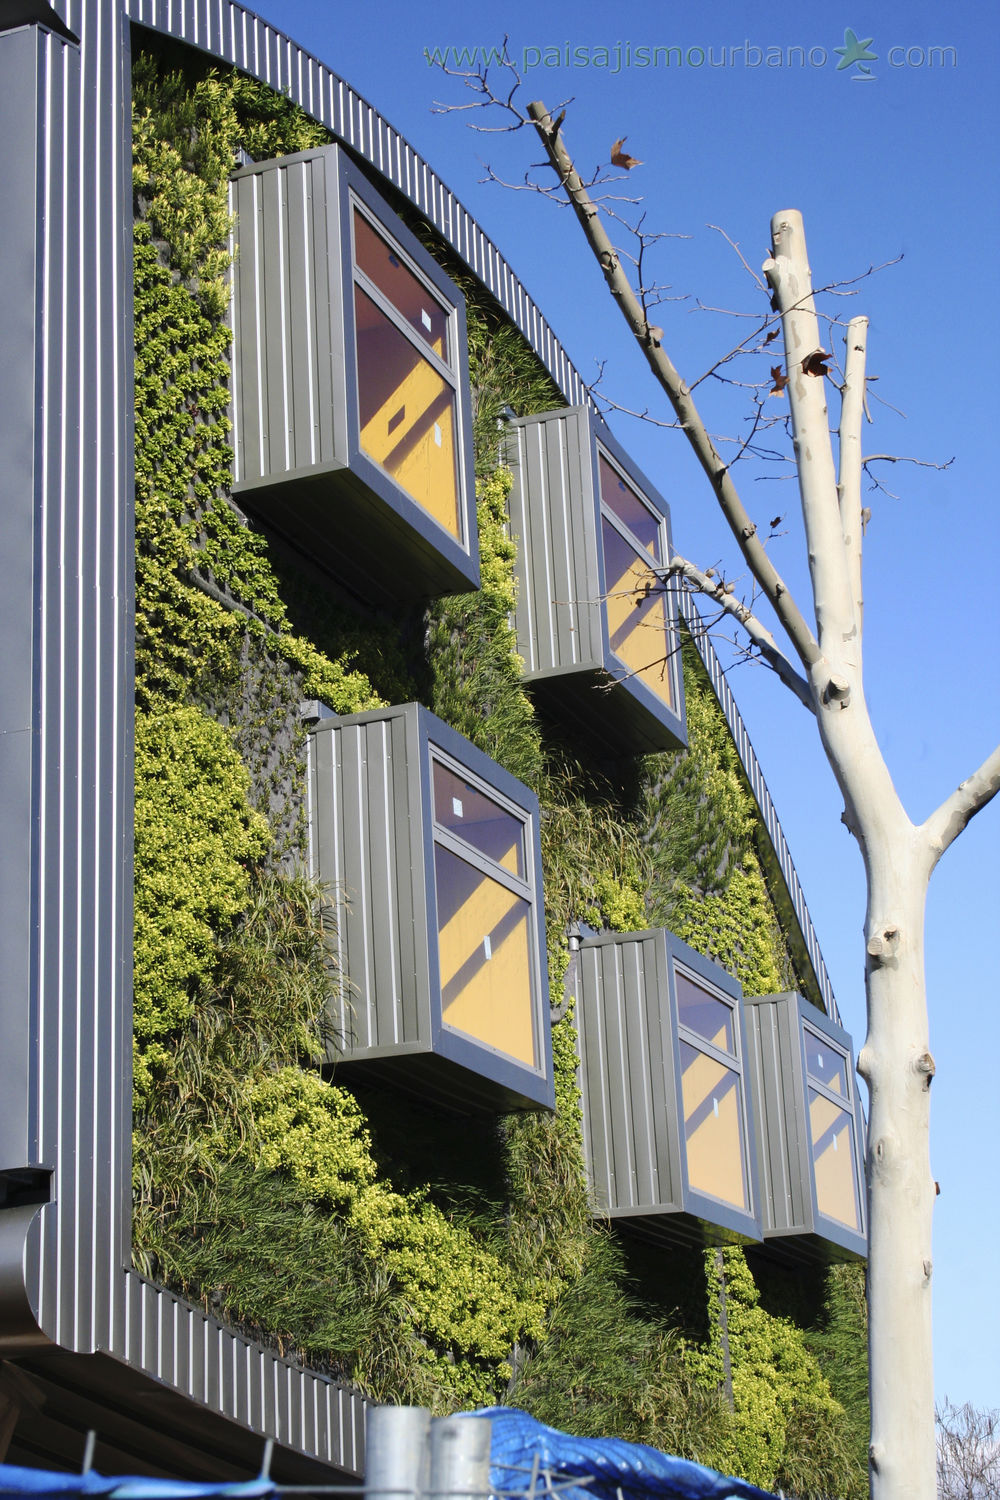 exterior green facade bioclimatic jardin vertical smart building in malaga